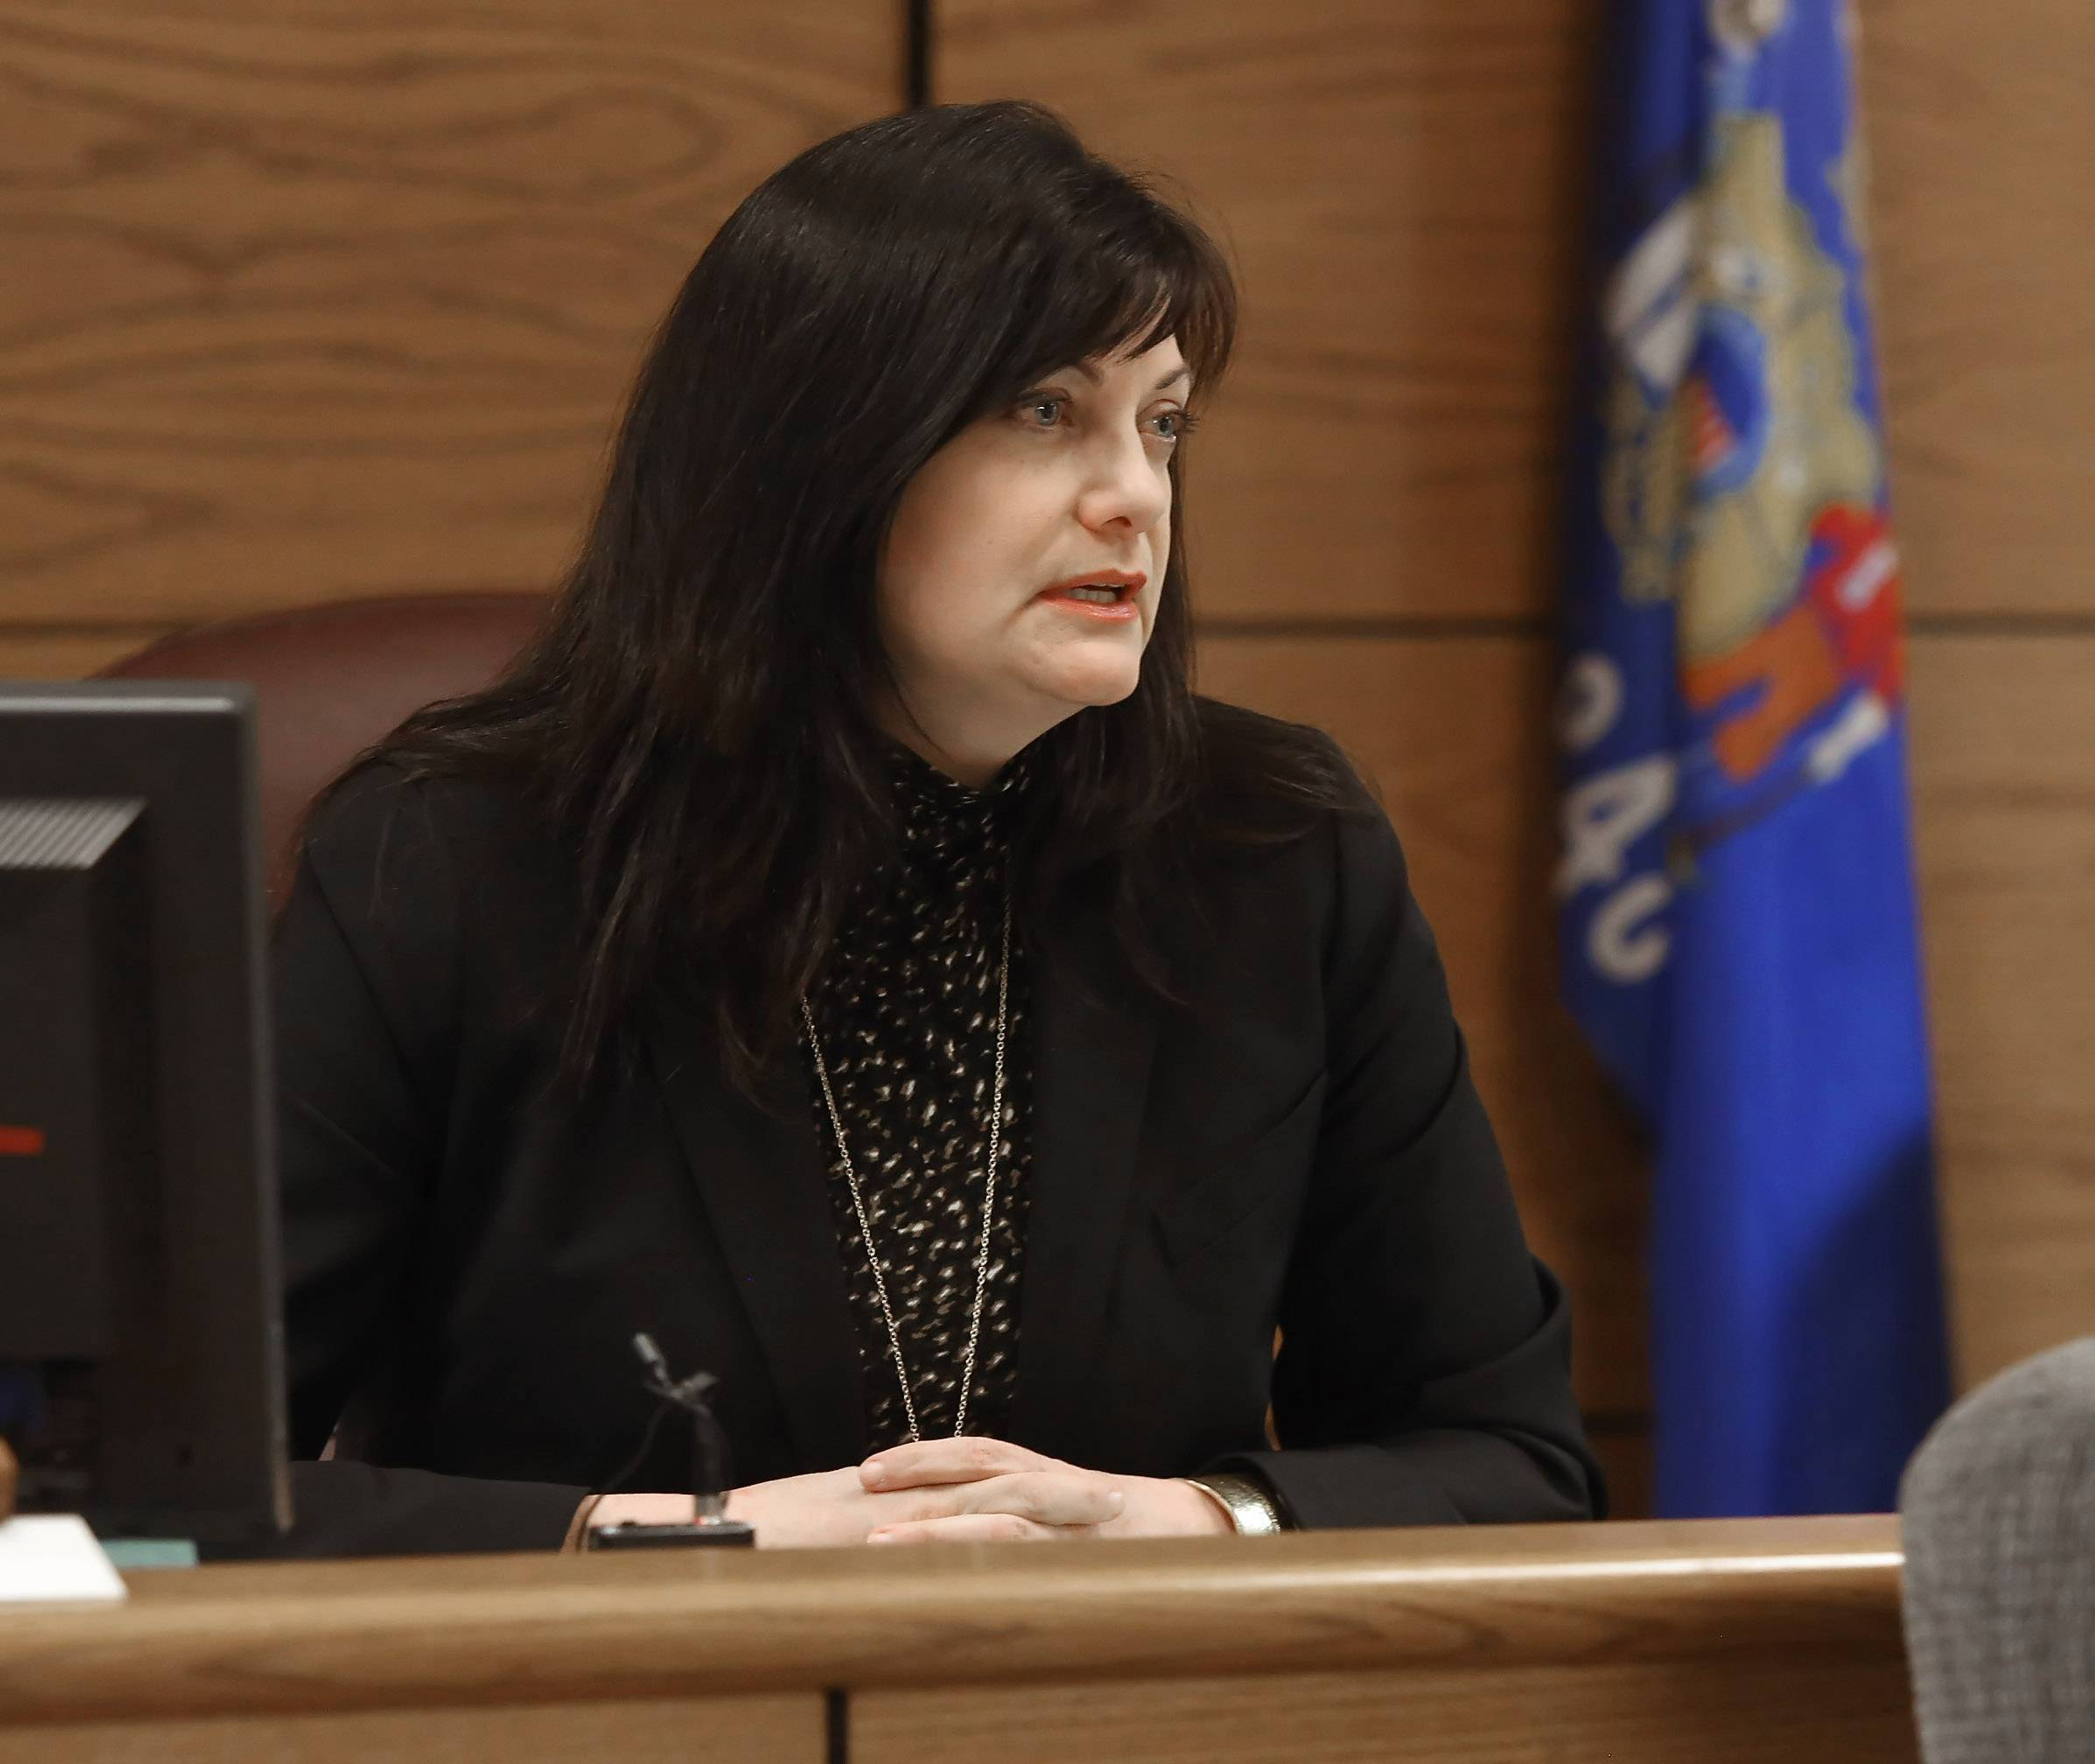 Racine County Court Commissioner Alice Rudebusch hears the charges against James P. Eaton, suspected in the 1997 murder of 14-year-old Palatine resident Amber Creek. Eaton, 36, on Wednesday made his first court appearance in Racine County since his weekend arrest.